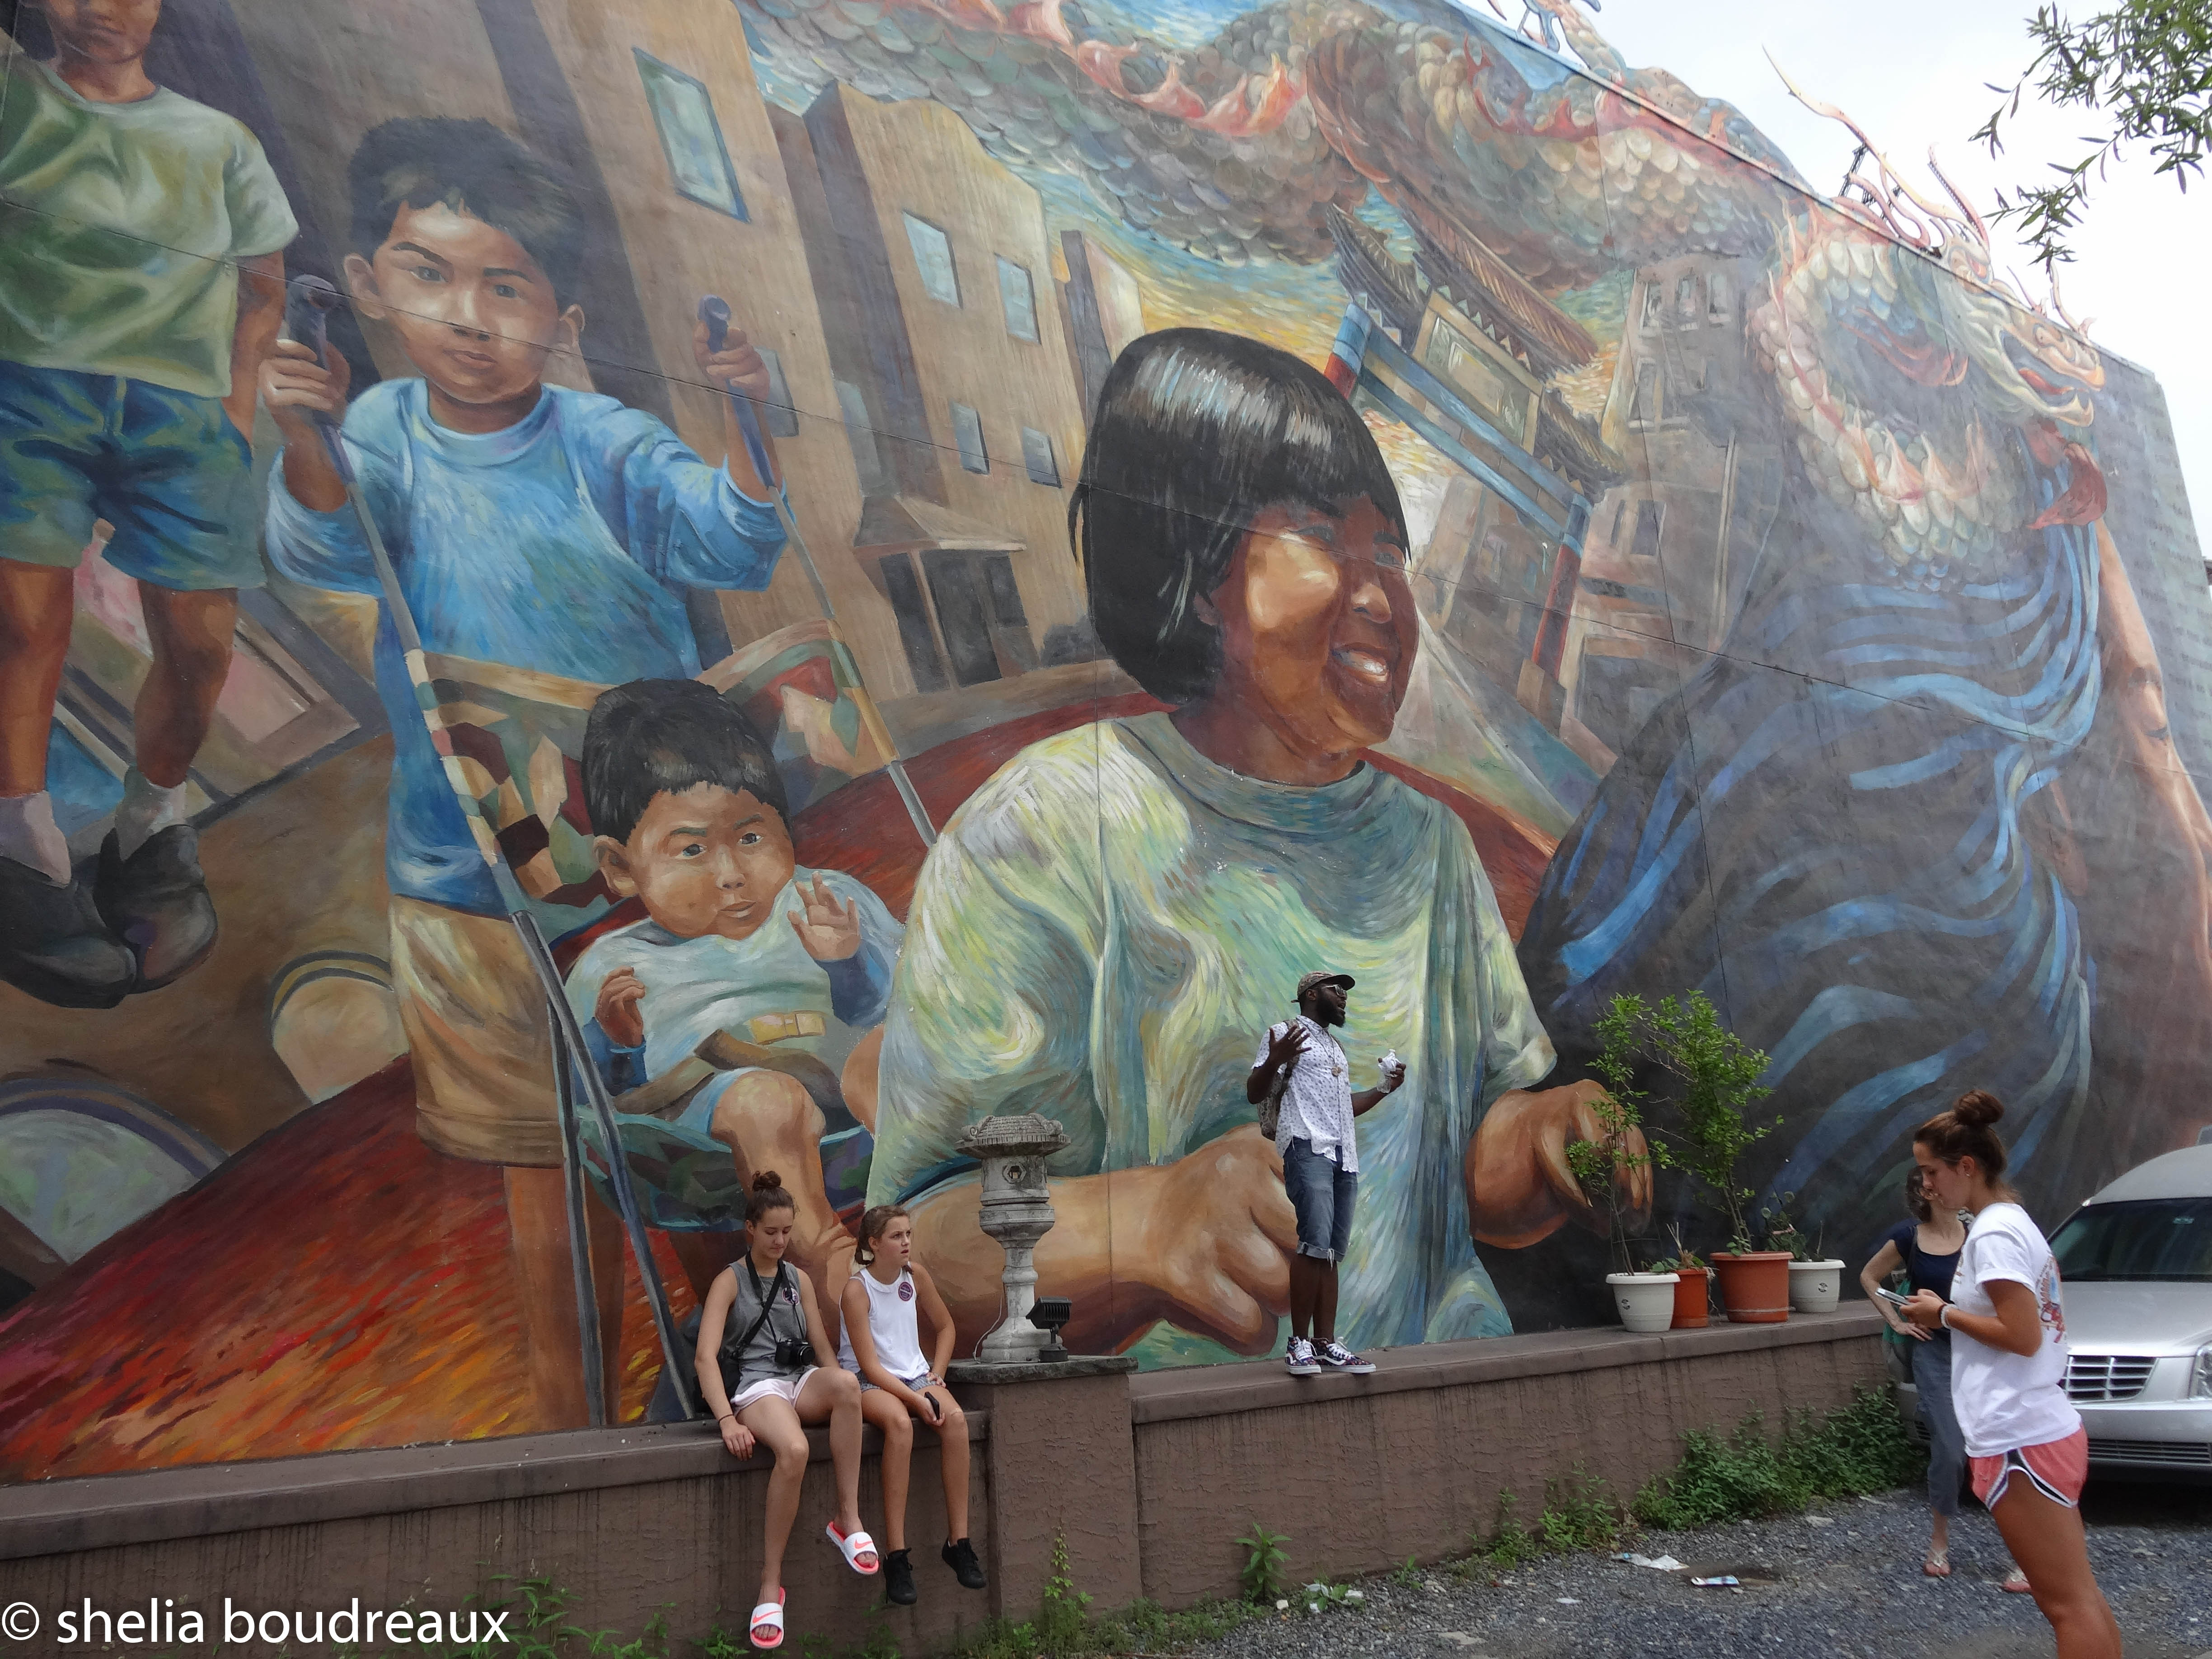 Mural as we enter Chinatown in Philly.